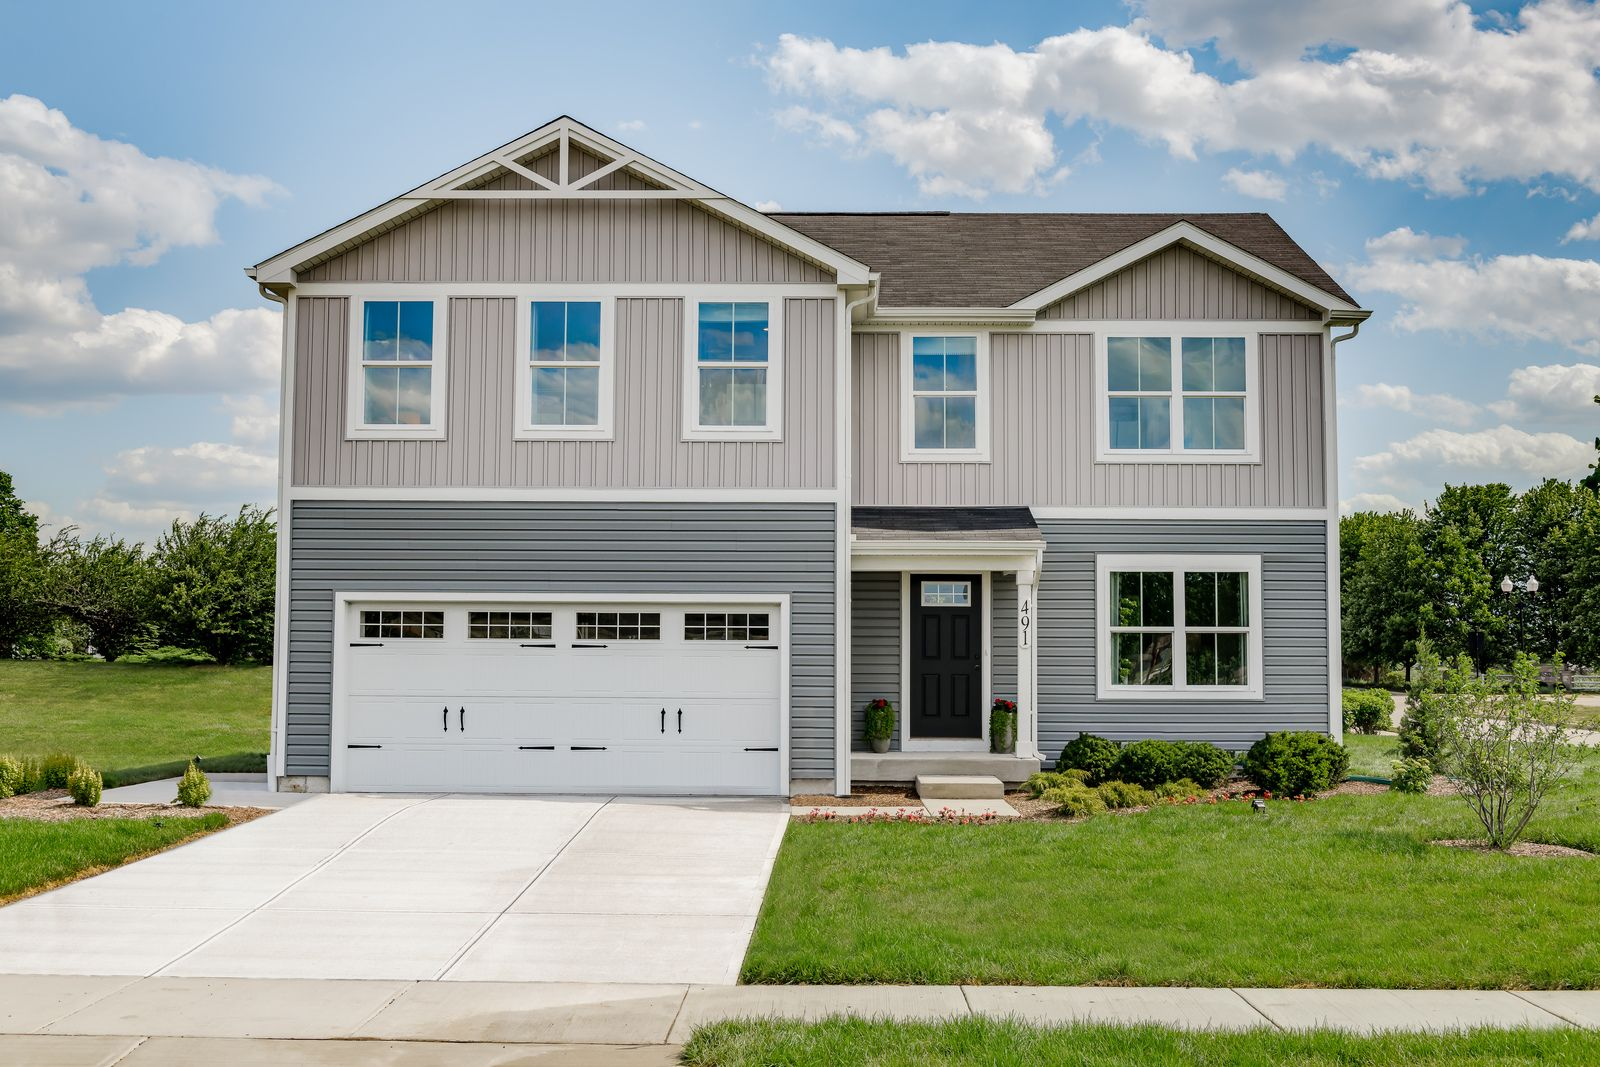 Welcome Home to Prairie Ridge - The Best Value 2-Story Homes In Hampshire:Choose from homes that offer 3-5 bedrooms, 2-car garage, large backyard, basement, with everything included! Conveniently located near I-90 and Rt. 20.Schedule a visit today!